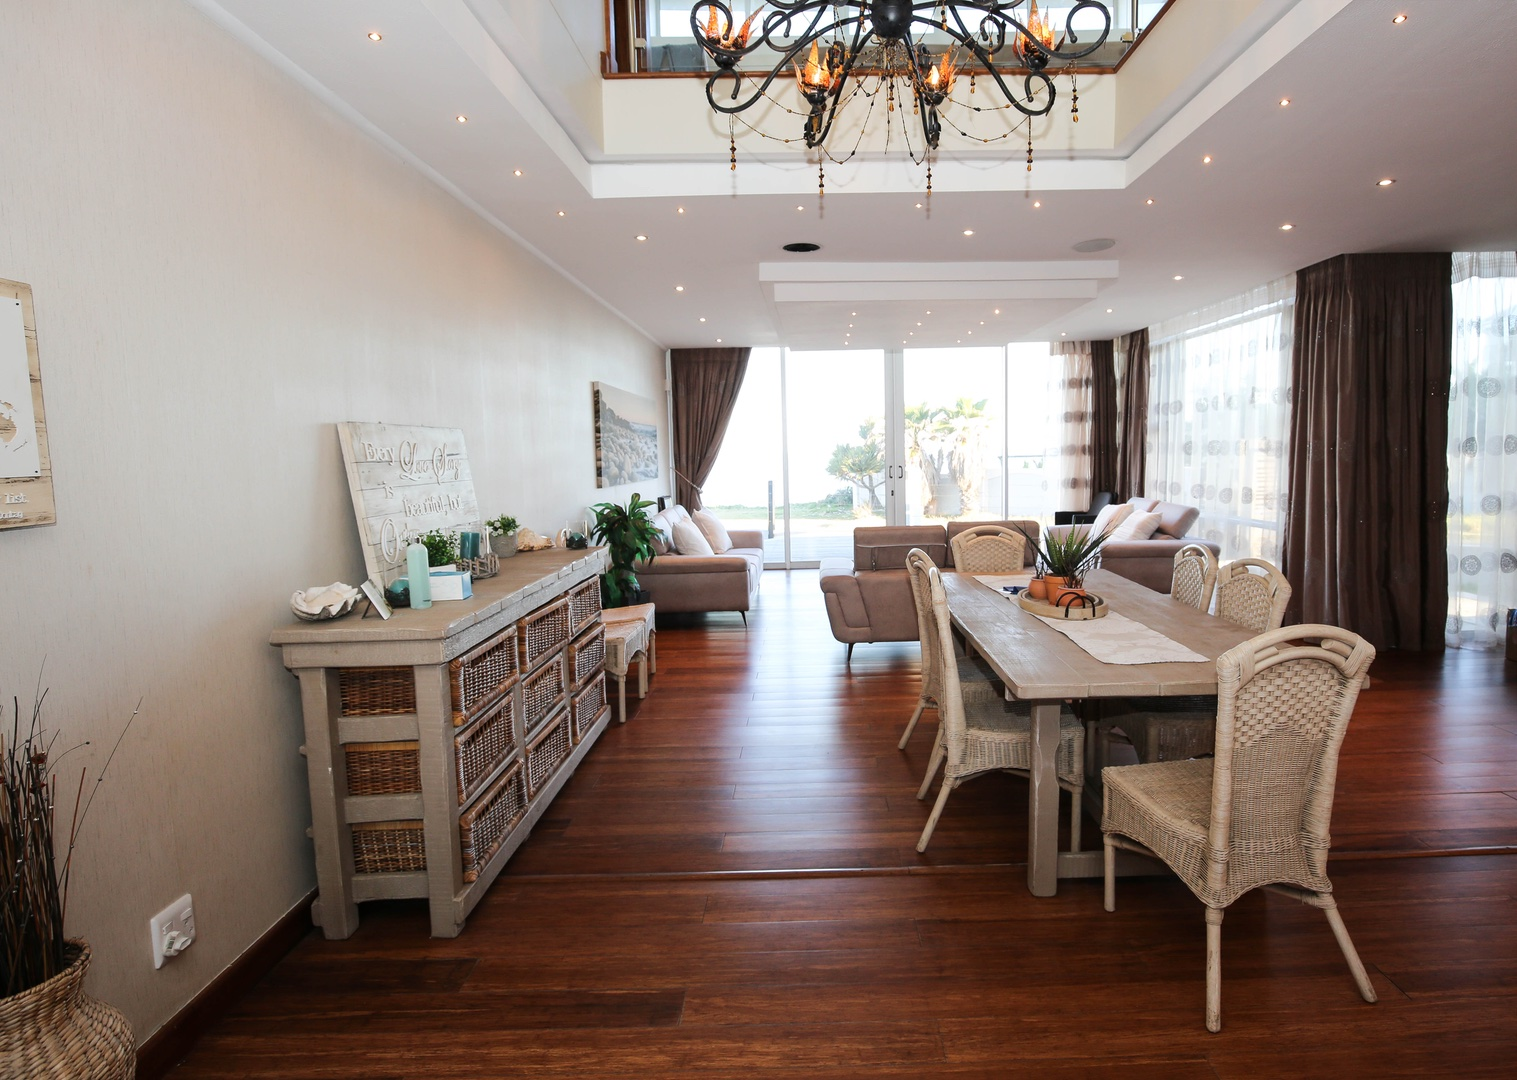 ERA SA | 4 Bedroom House For Sale In Gonubie, East-london